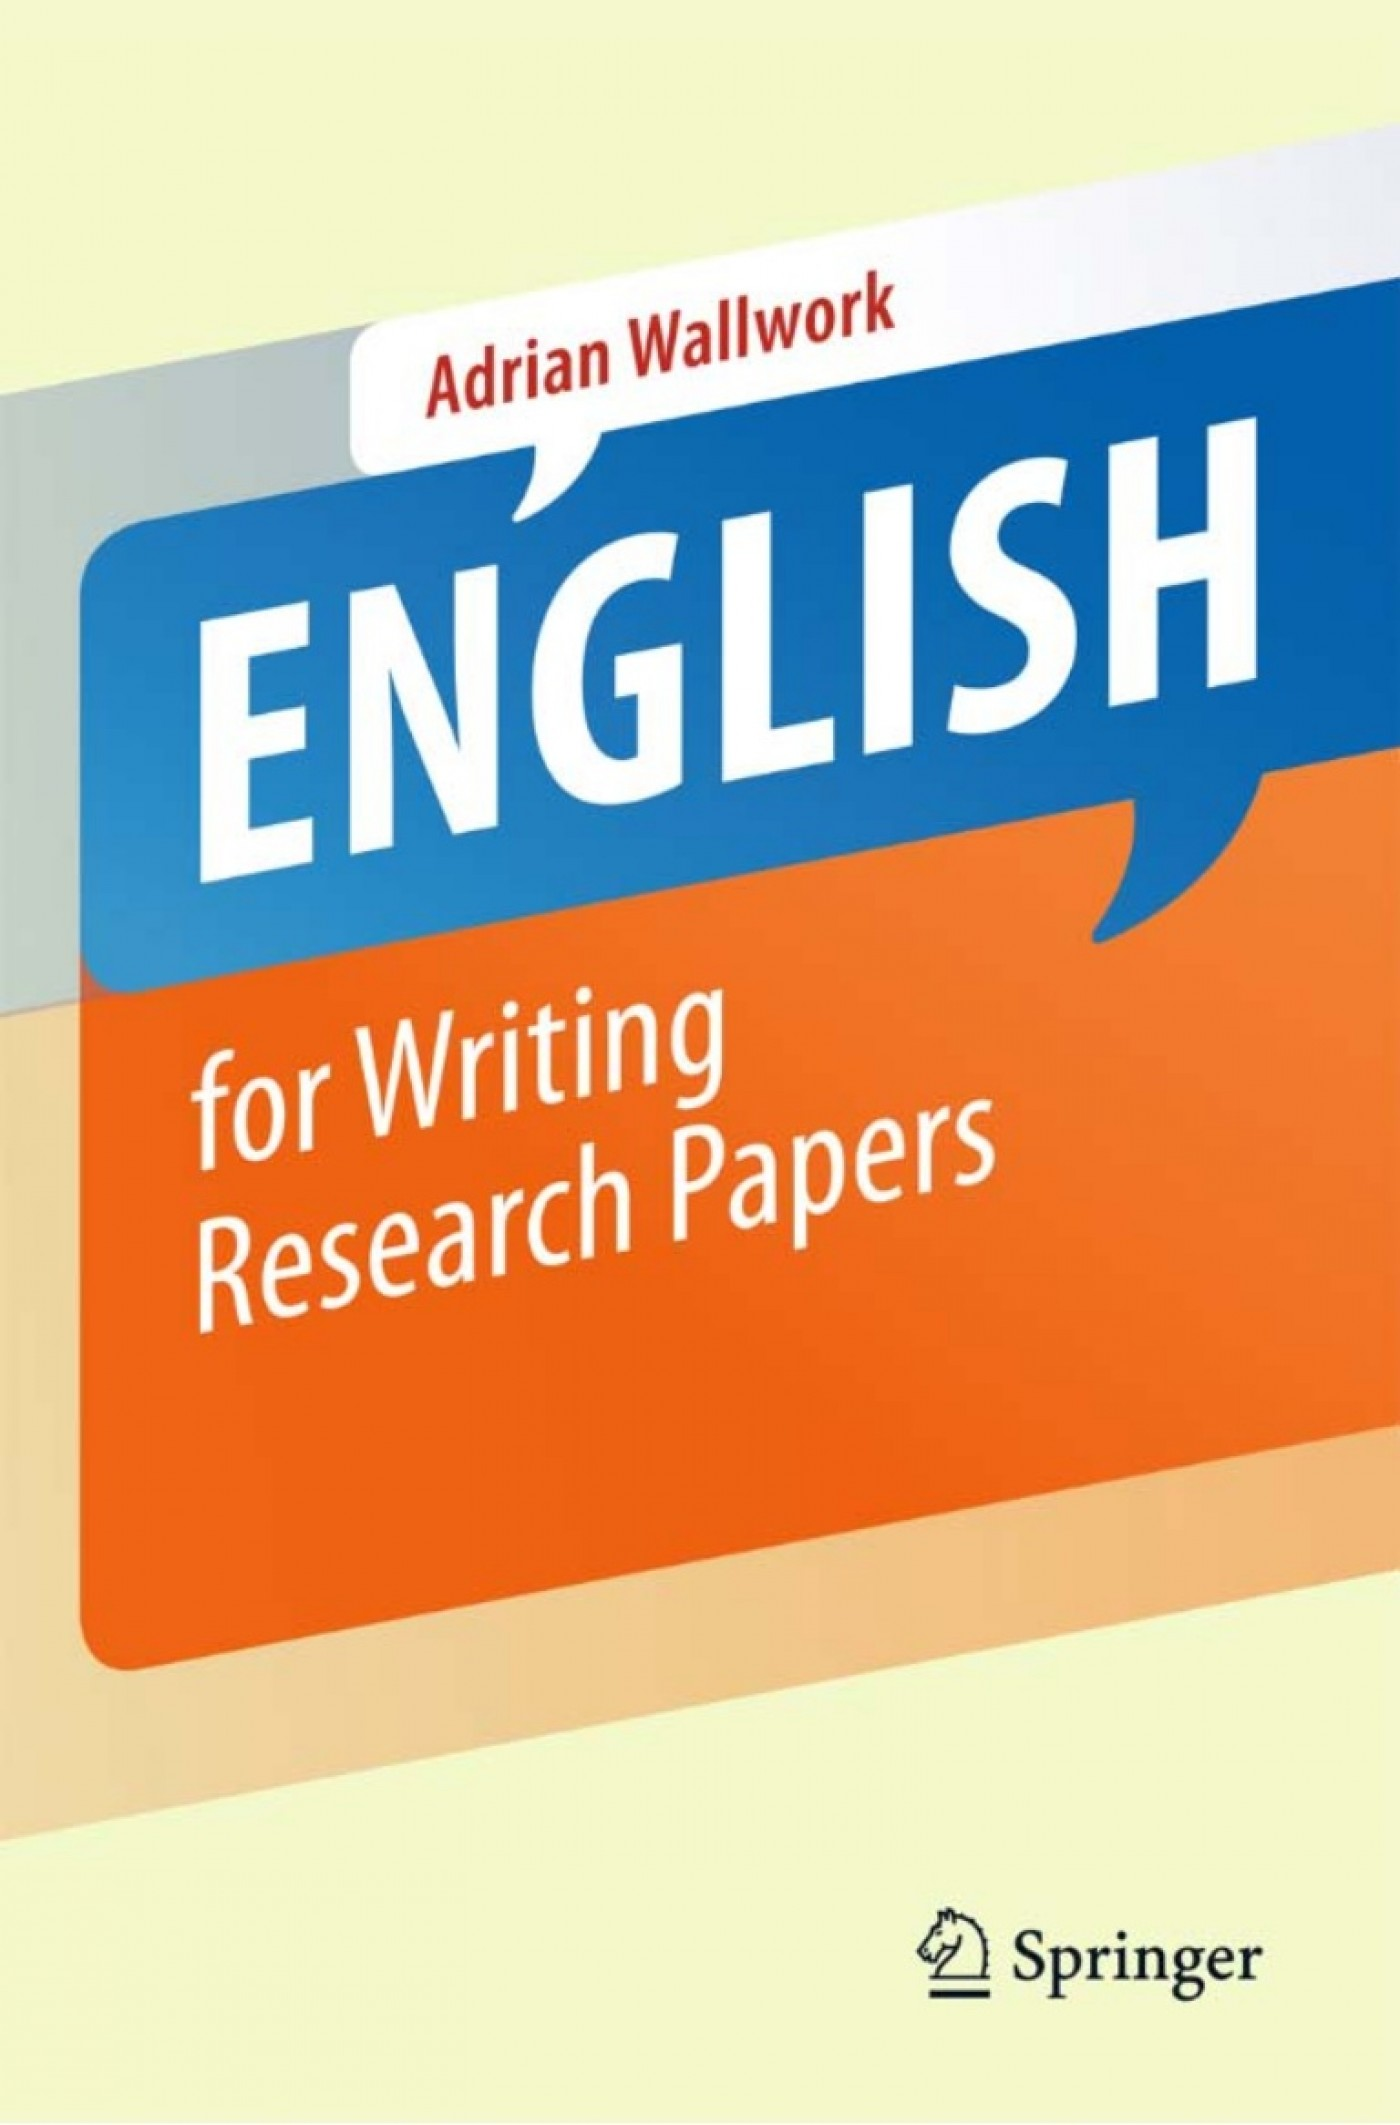 021 Englishforwritingresearchpapers Conversion Gate01 Thumbnail Help With Writing Researchs Fantastic Research Papers Assistance A Paper 1400